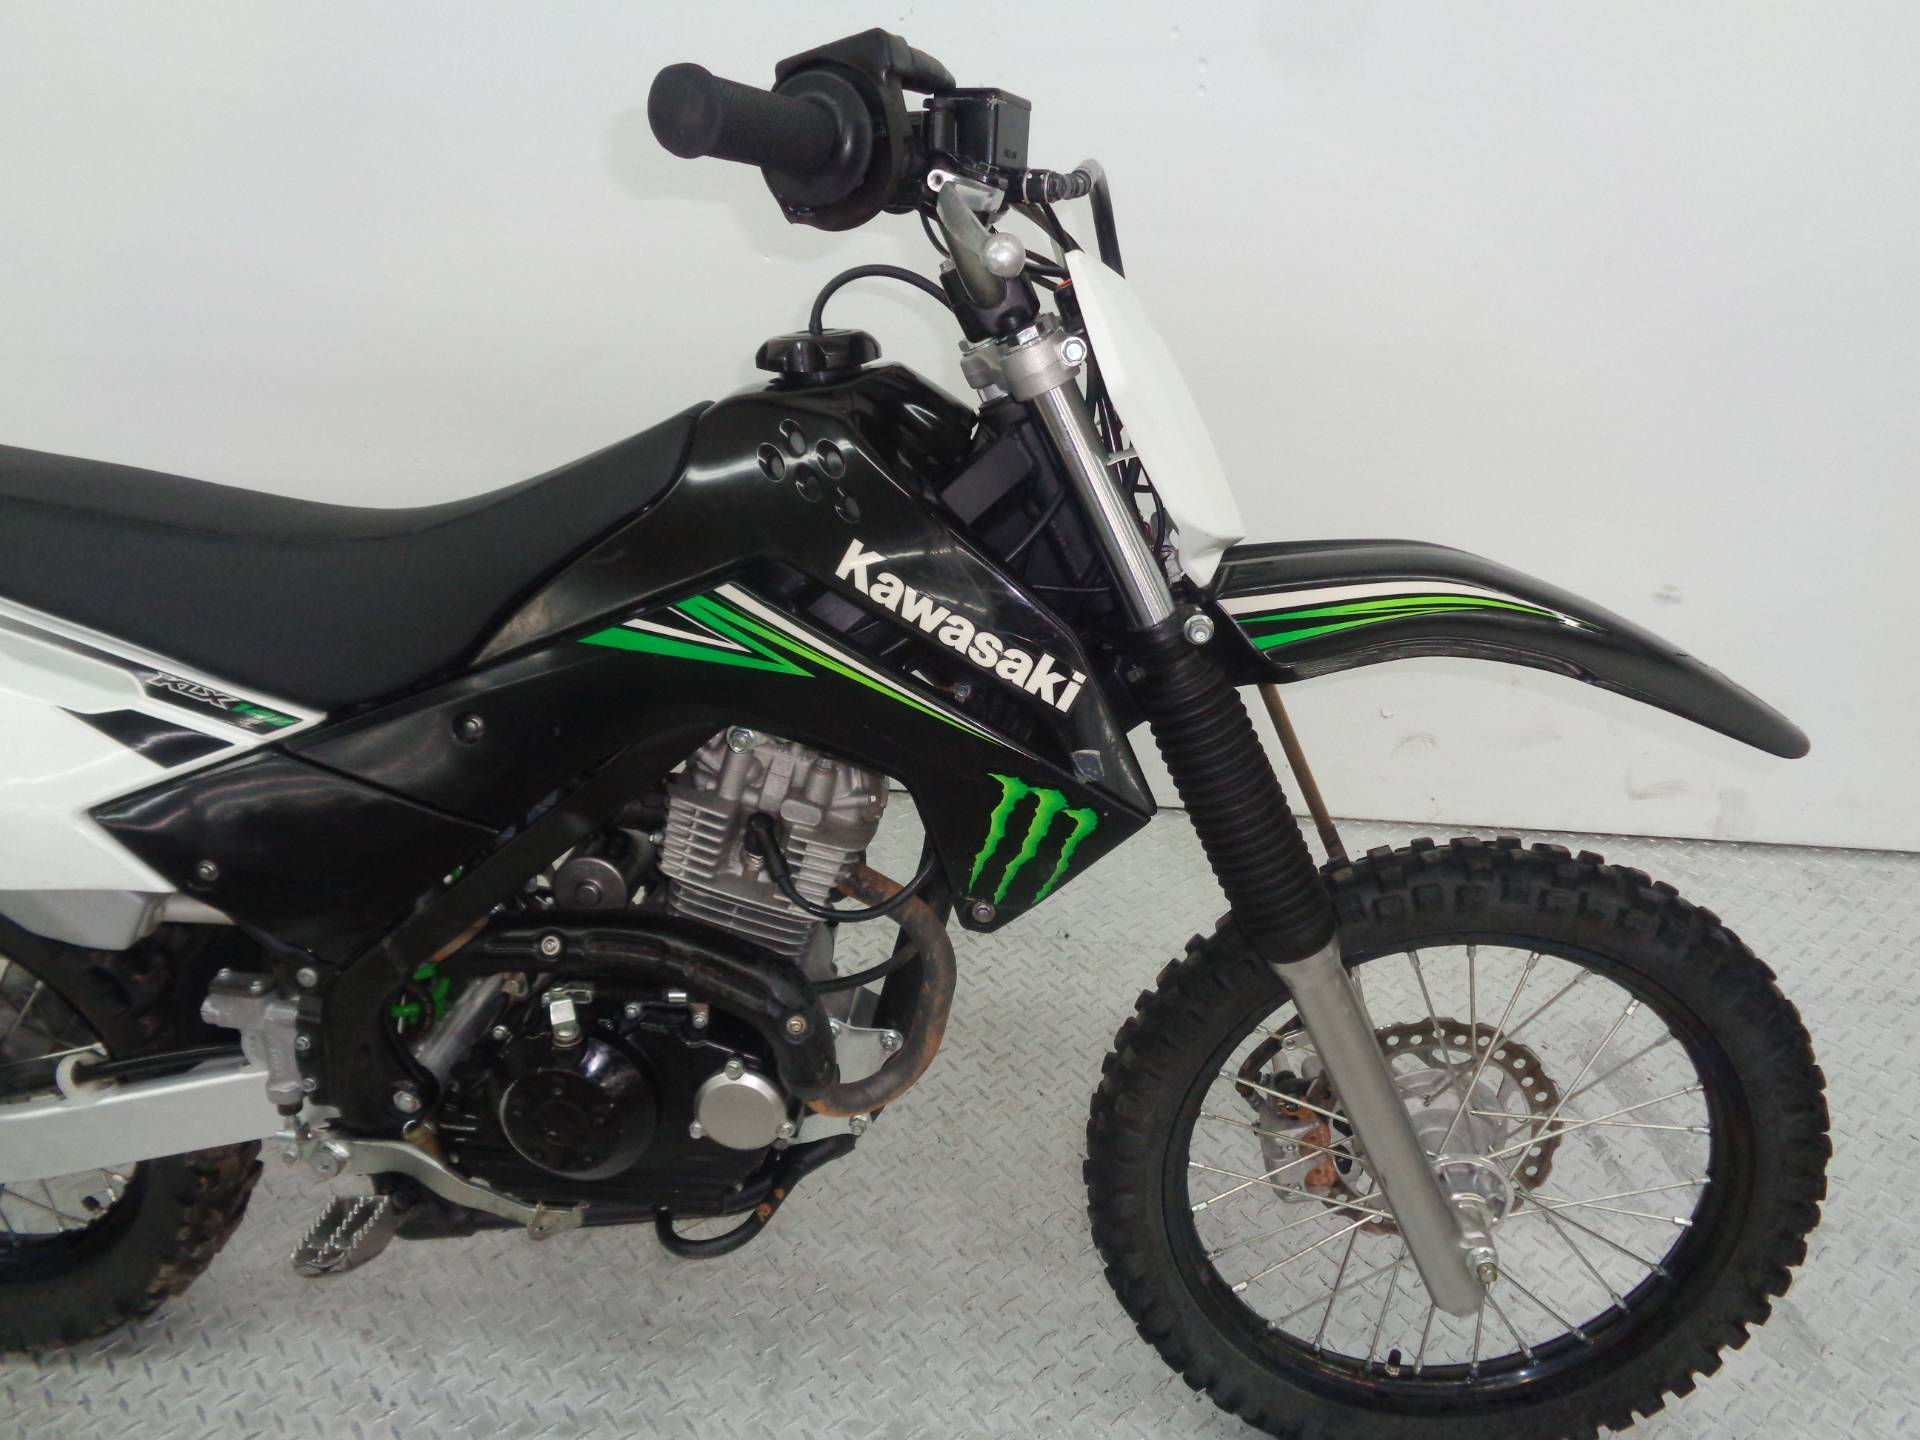 Used 2009 Kawasaki Klx140 Monster Energy Motorcycles In Tulsa Ok